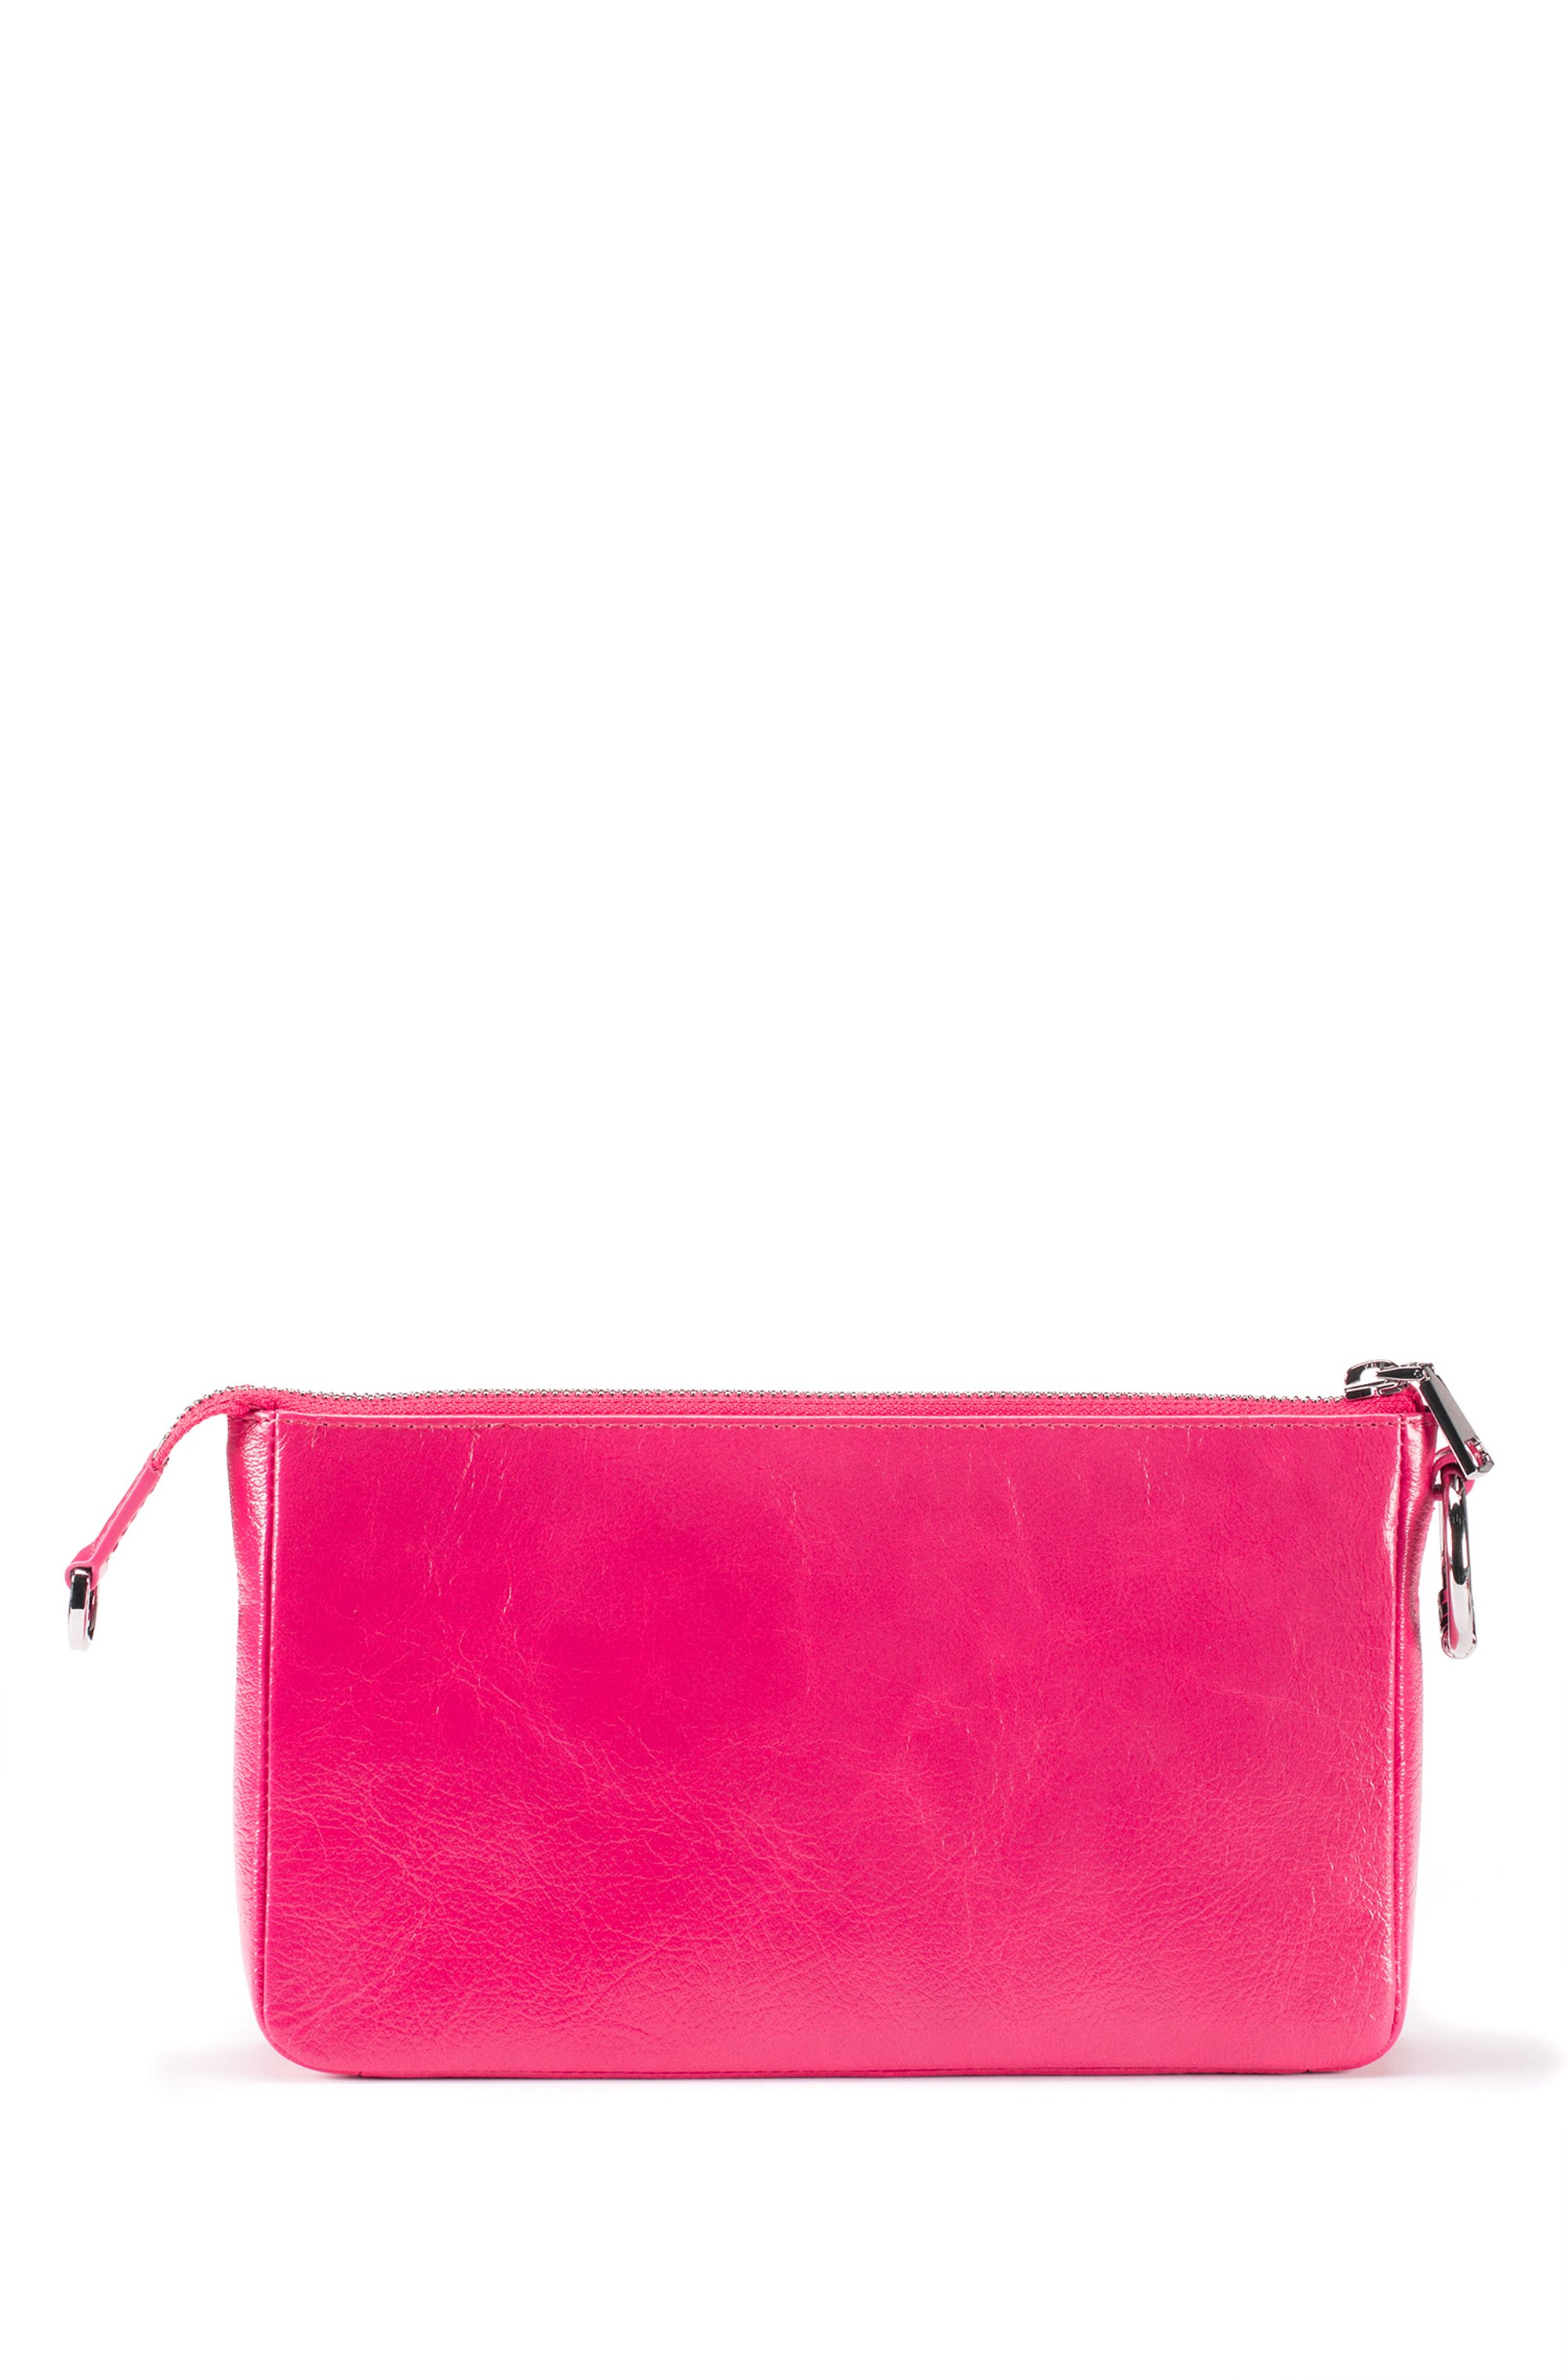 Mini bag in lustrous leather with detachable chain strap